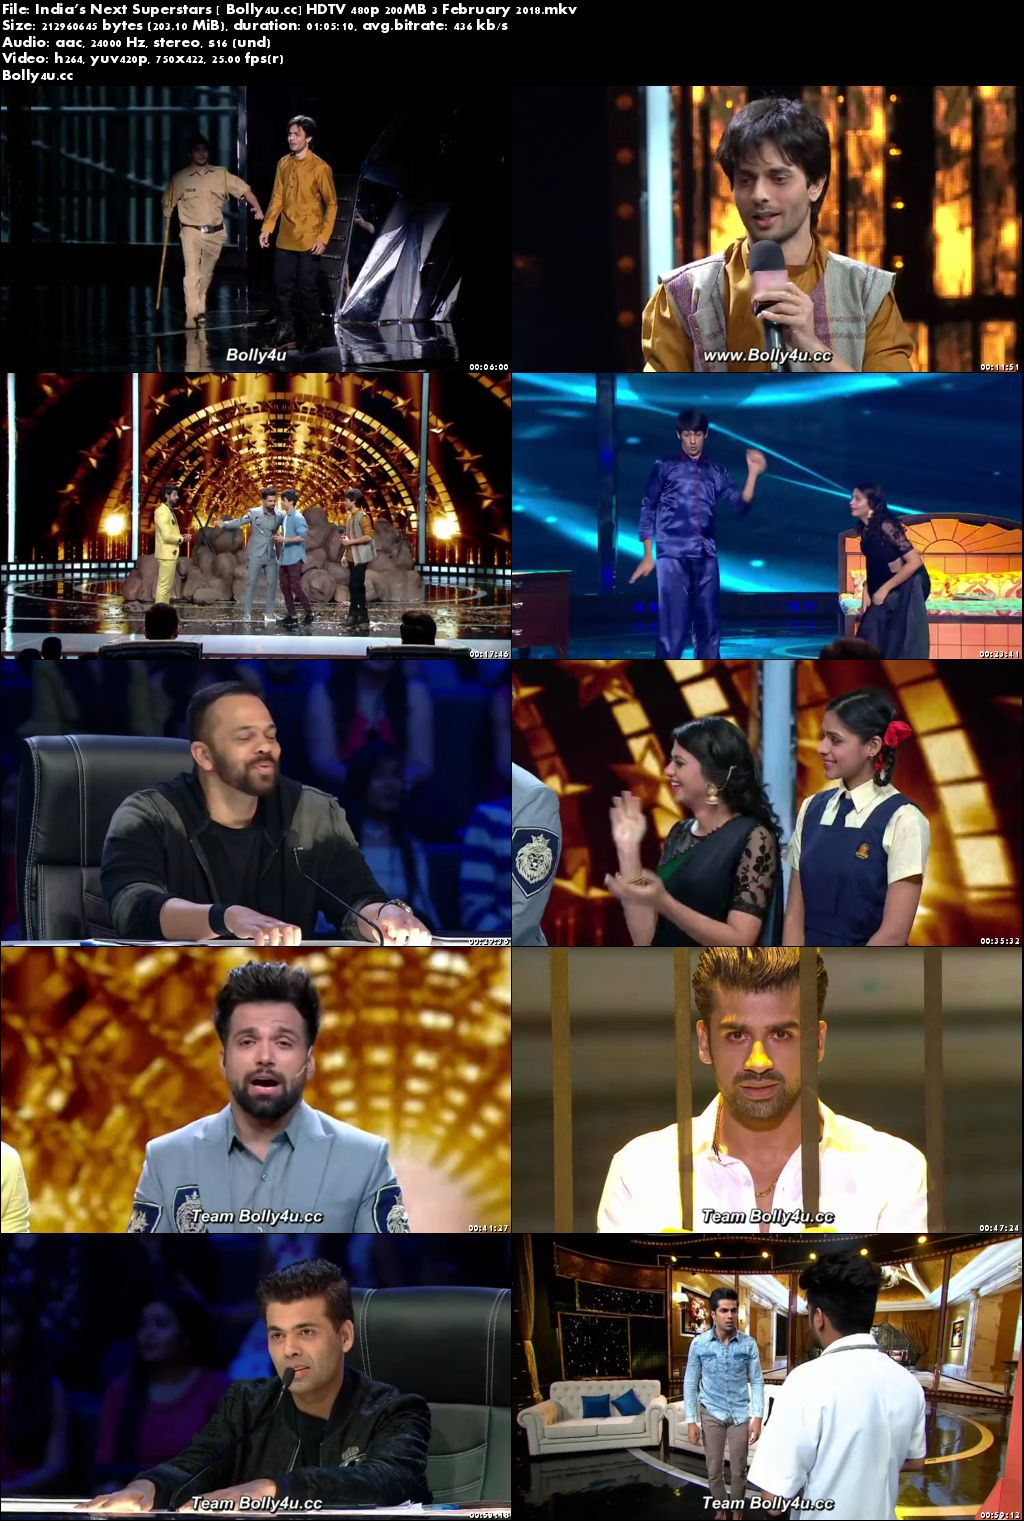 Indias Next Superstars HDTV 480p 200MB 03 February 2018 Download